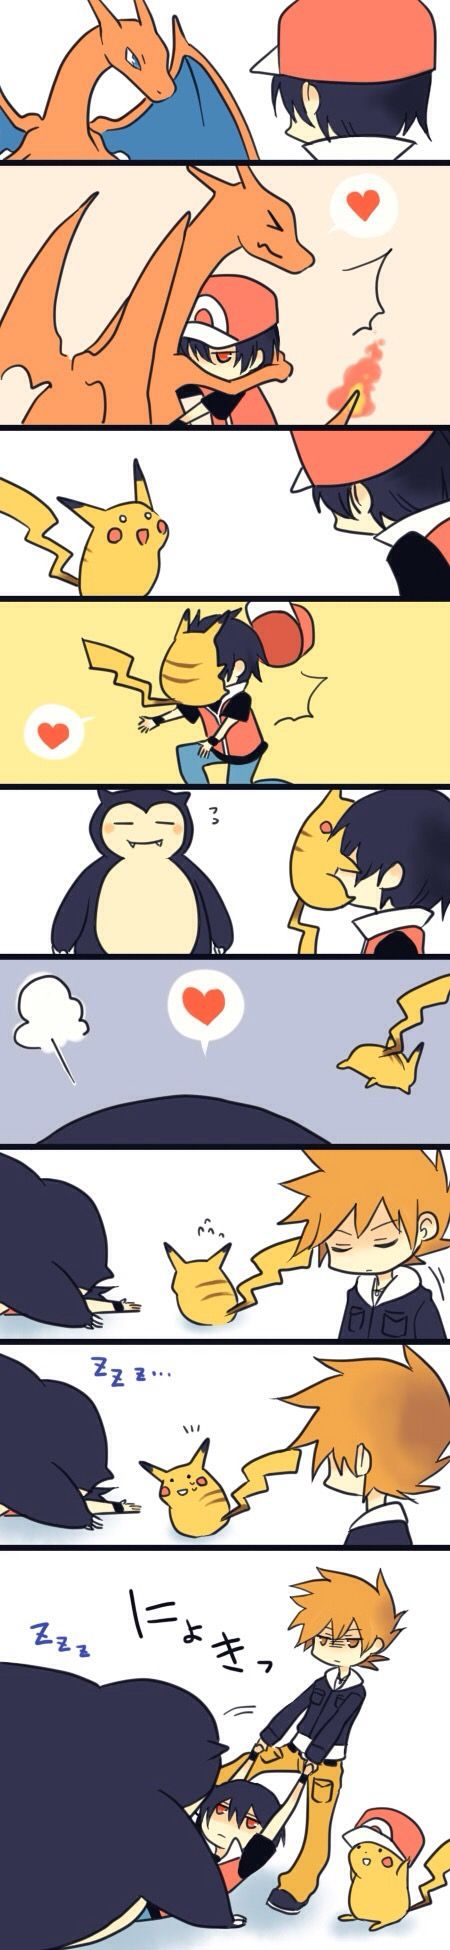 Love pikachu wearing his hat in the last panel XD